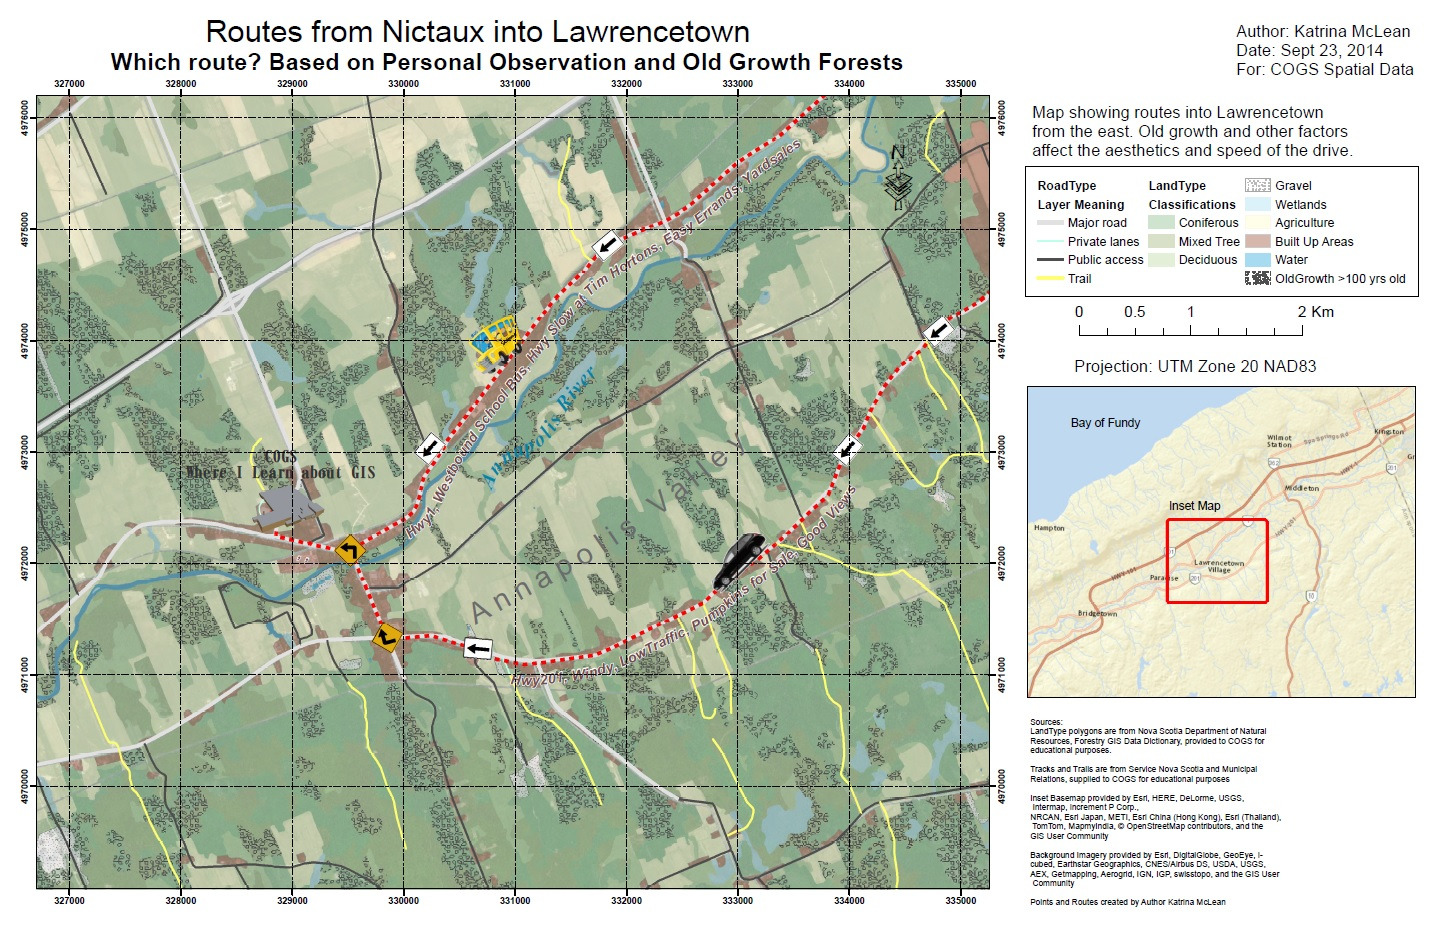 LawrencetownThemeMap